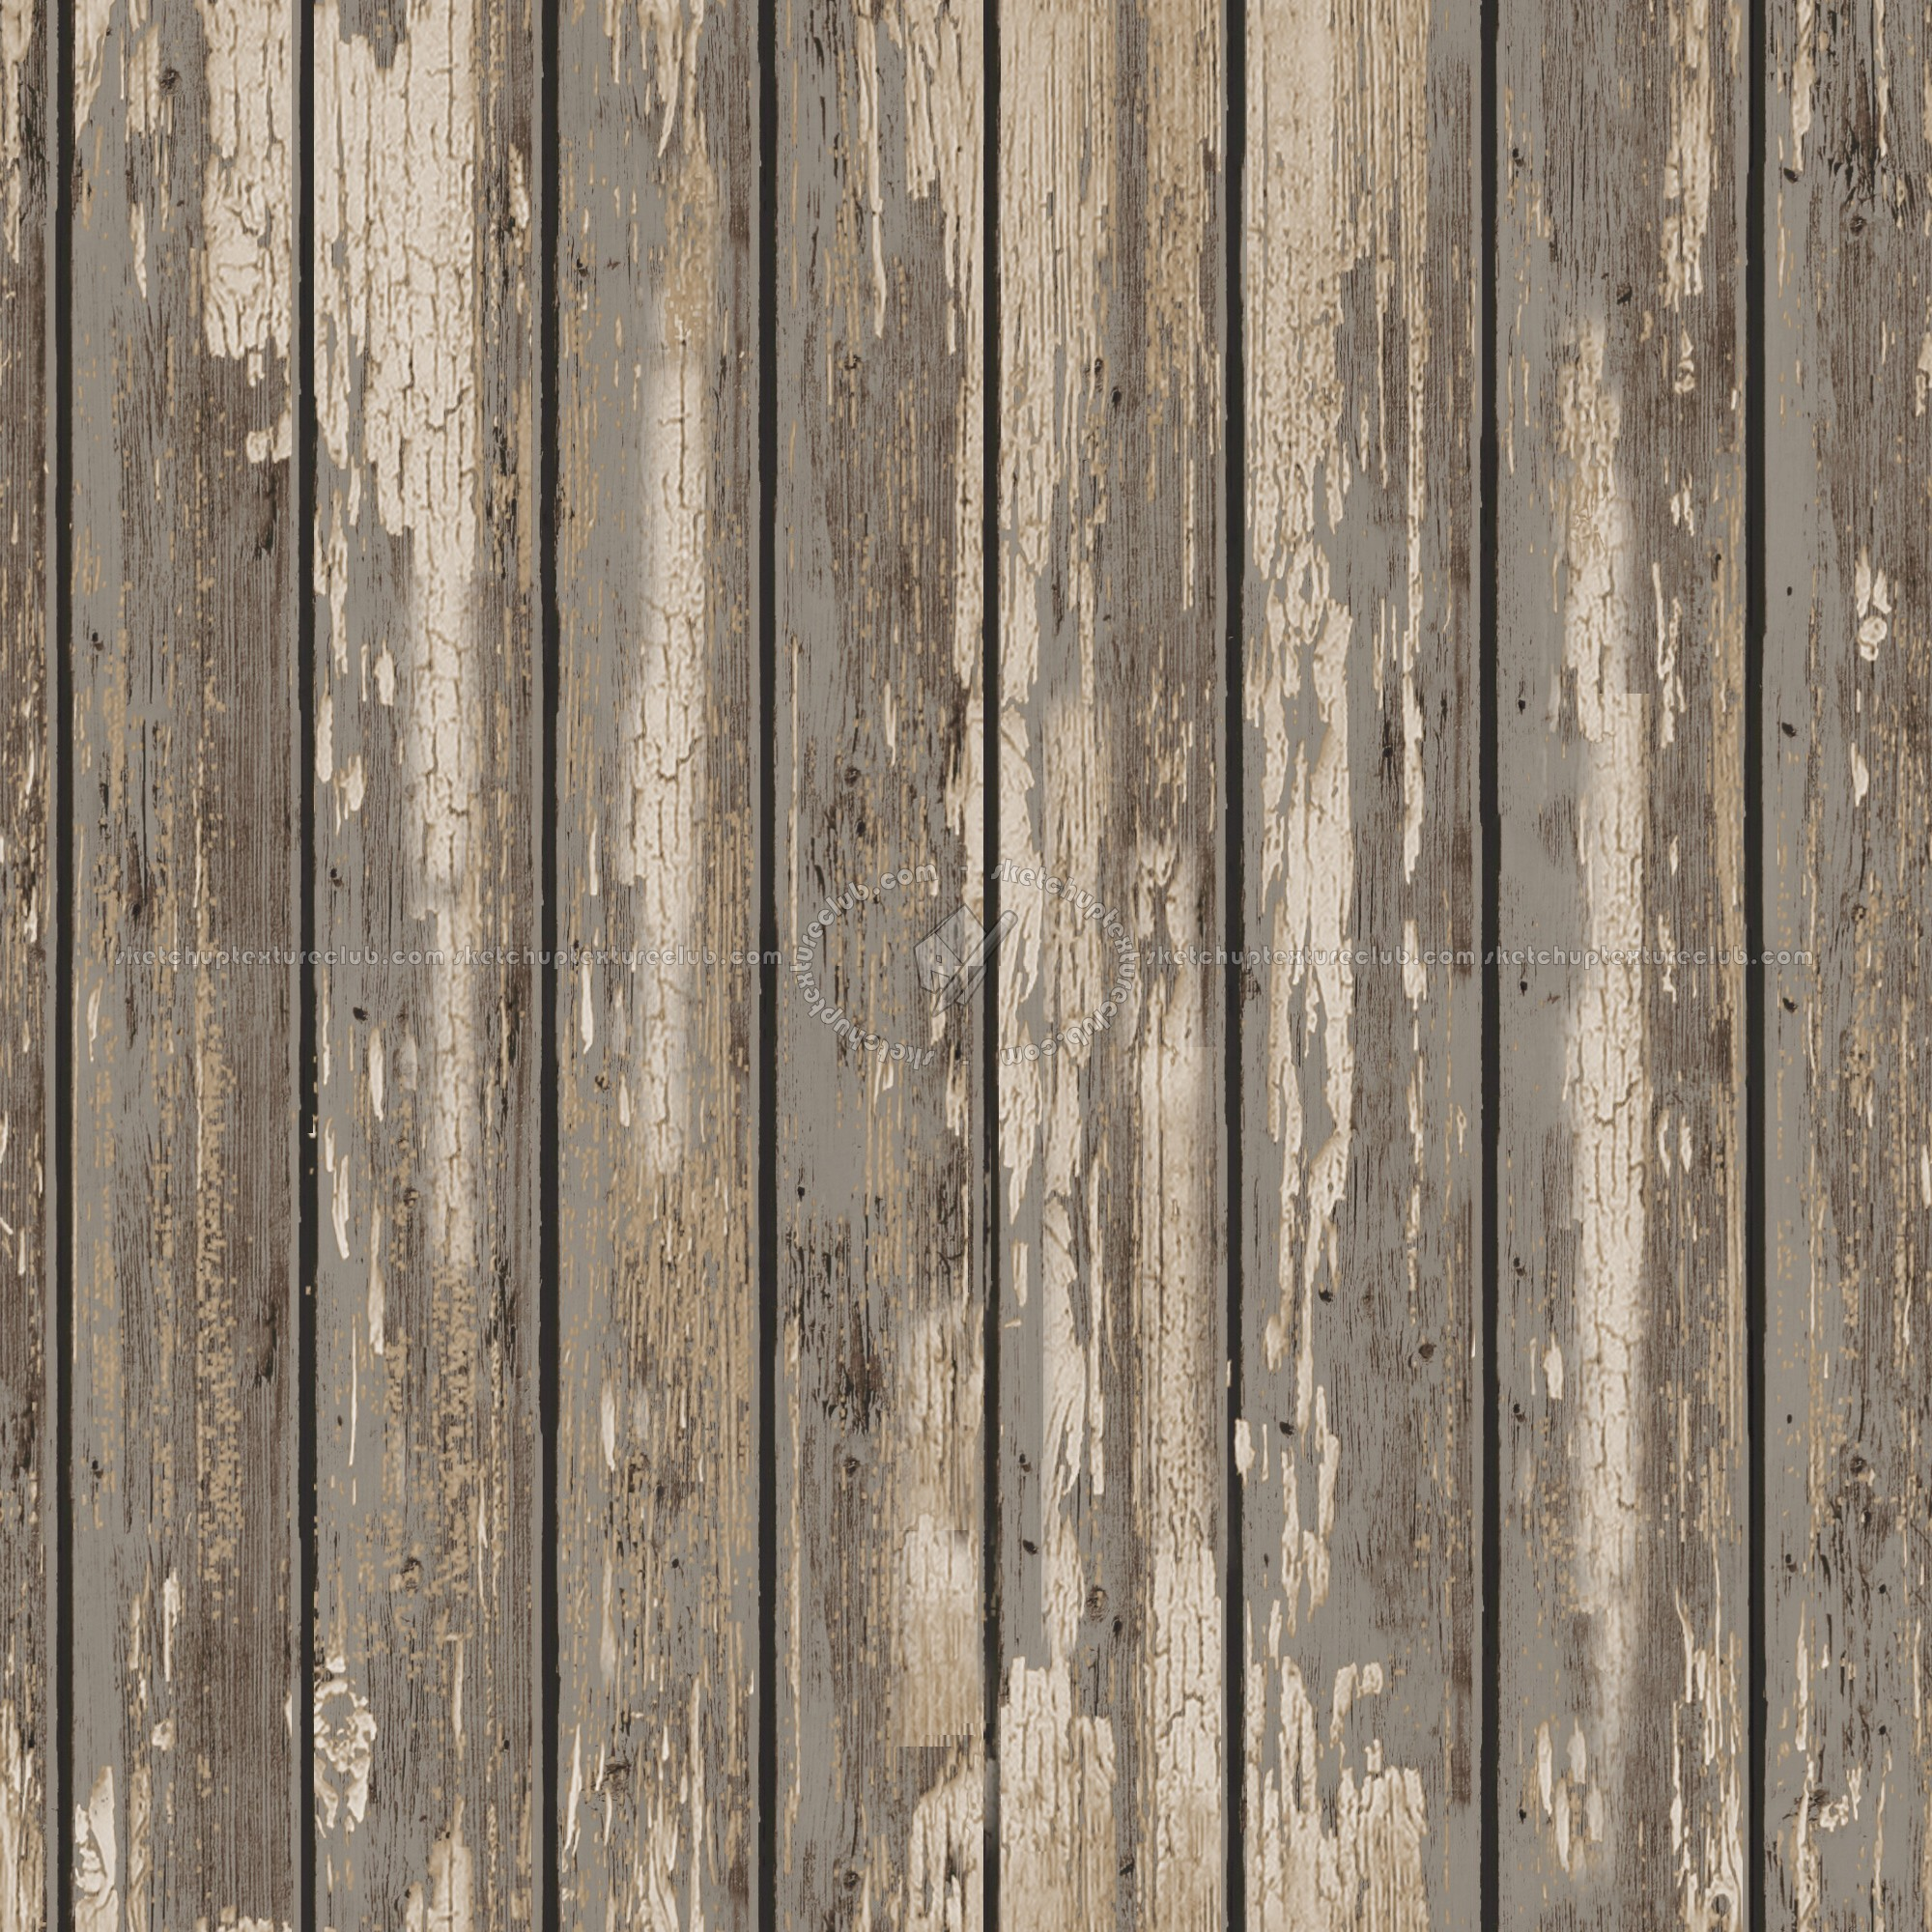 3d Damask Wallpaper Varnished Dirty Wood Plank Texture Seamless 09148